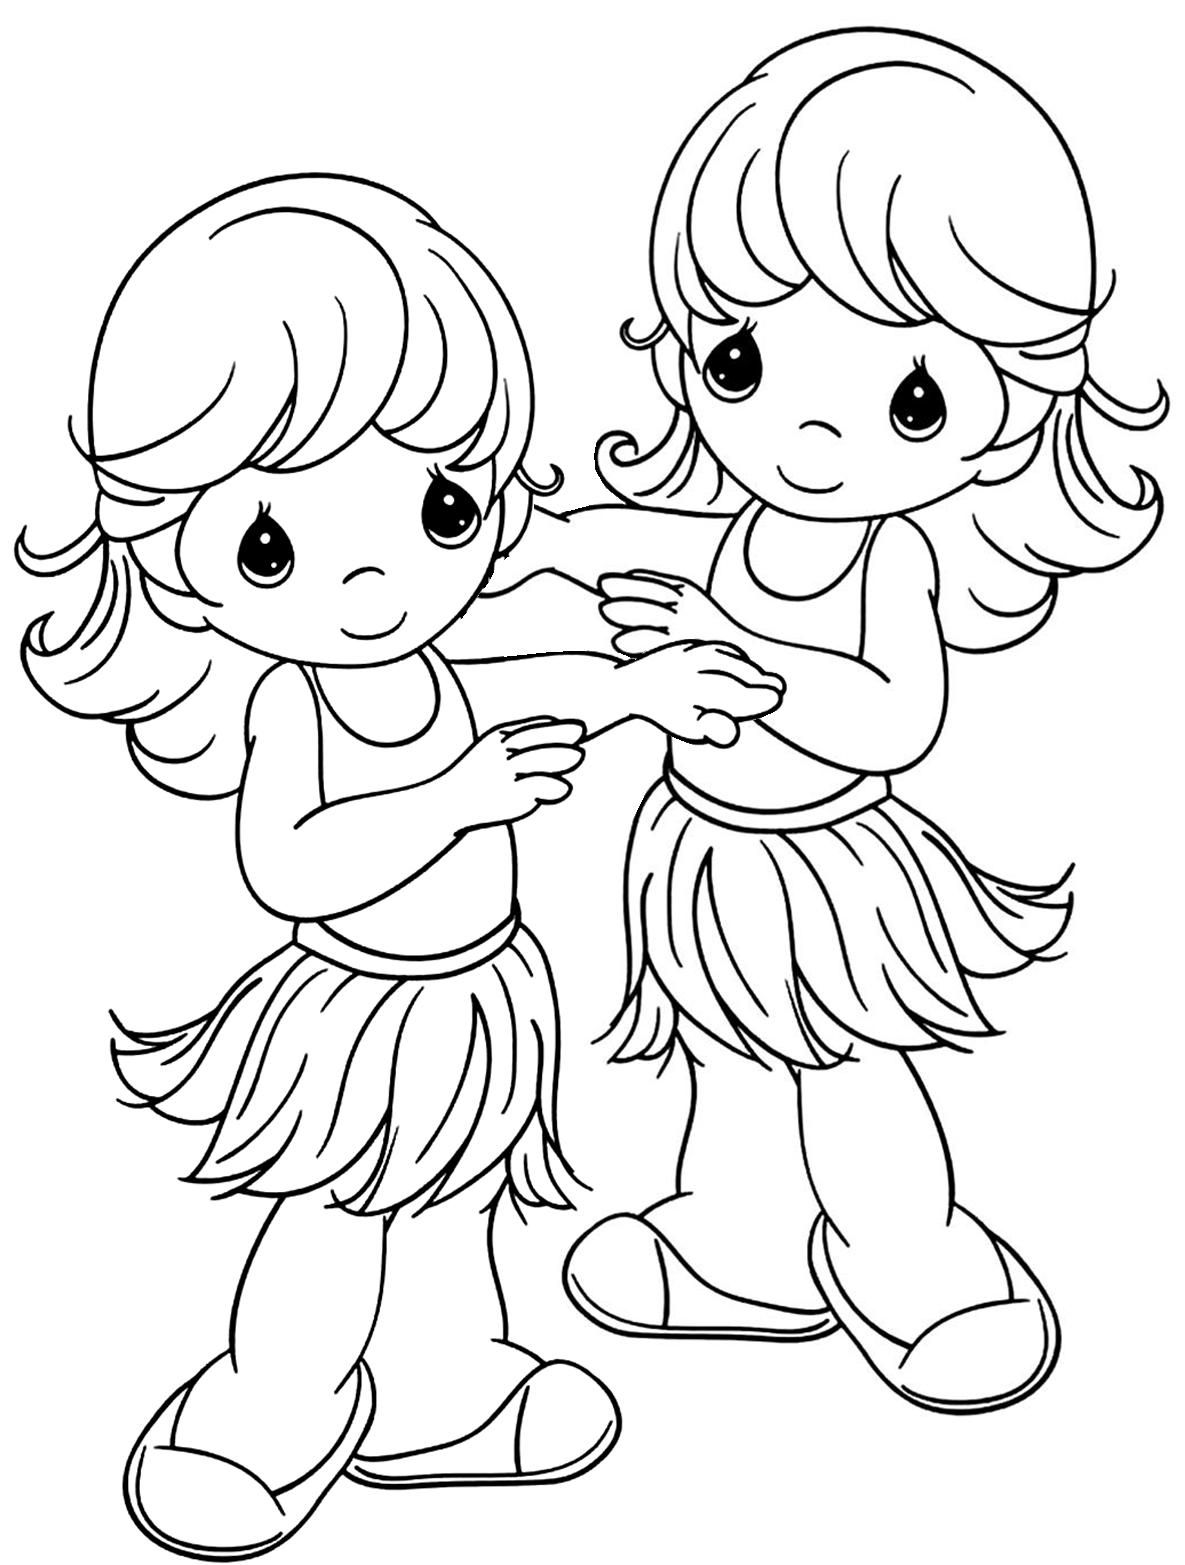 Beach party luau hula girls precious moments coloring page | Adult ...